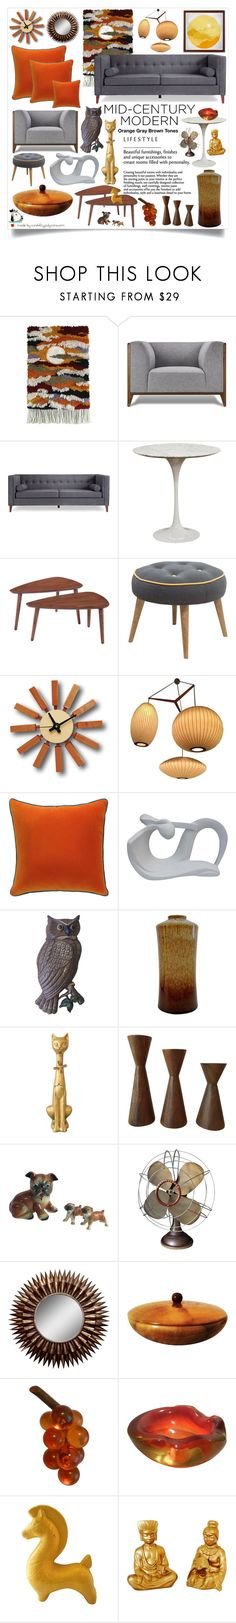 """""""Mid-Century Modern: Orange Gray Brown Tones!"""" by curekitty ❤ liked on Polyvore featuring interior, interiors, interior design, home, home decor, interior decorating, Baxton Studio, Andrew Martin, Westinghouse and Myrtlewood"""